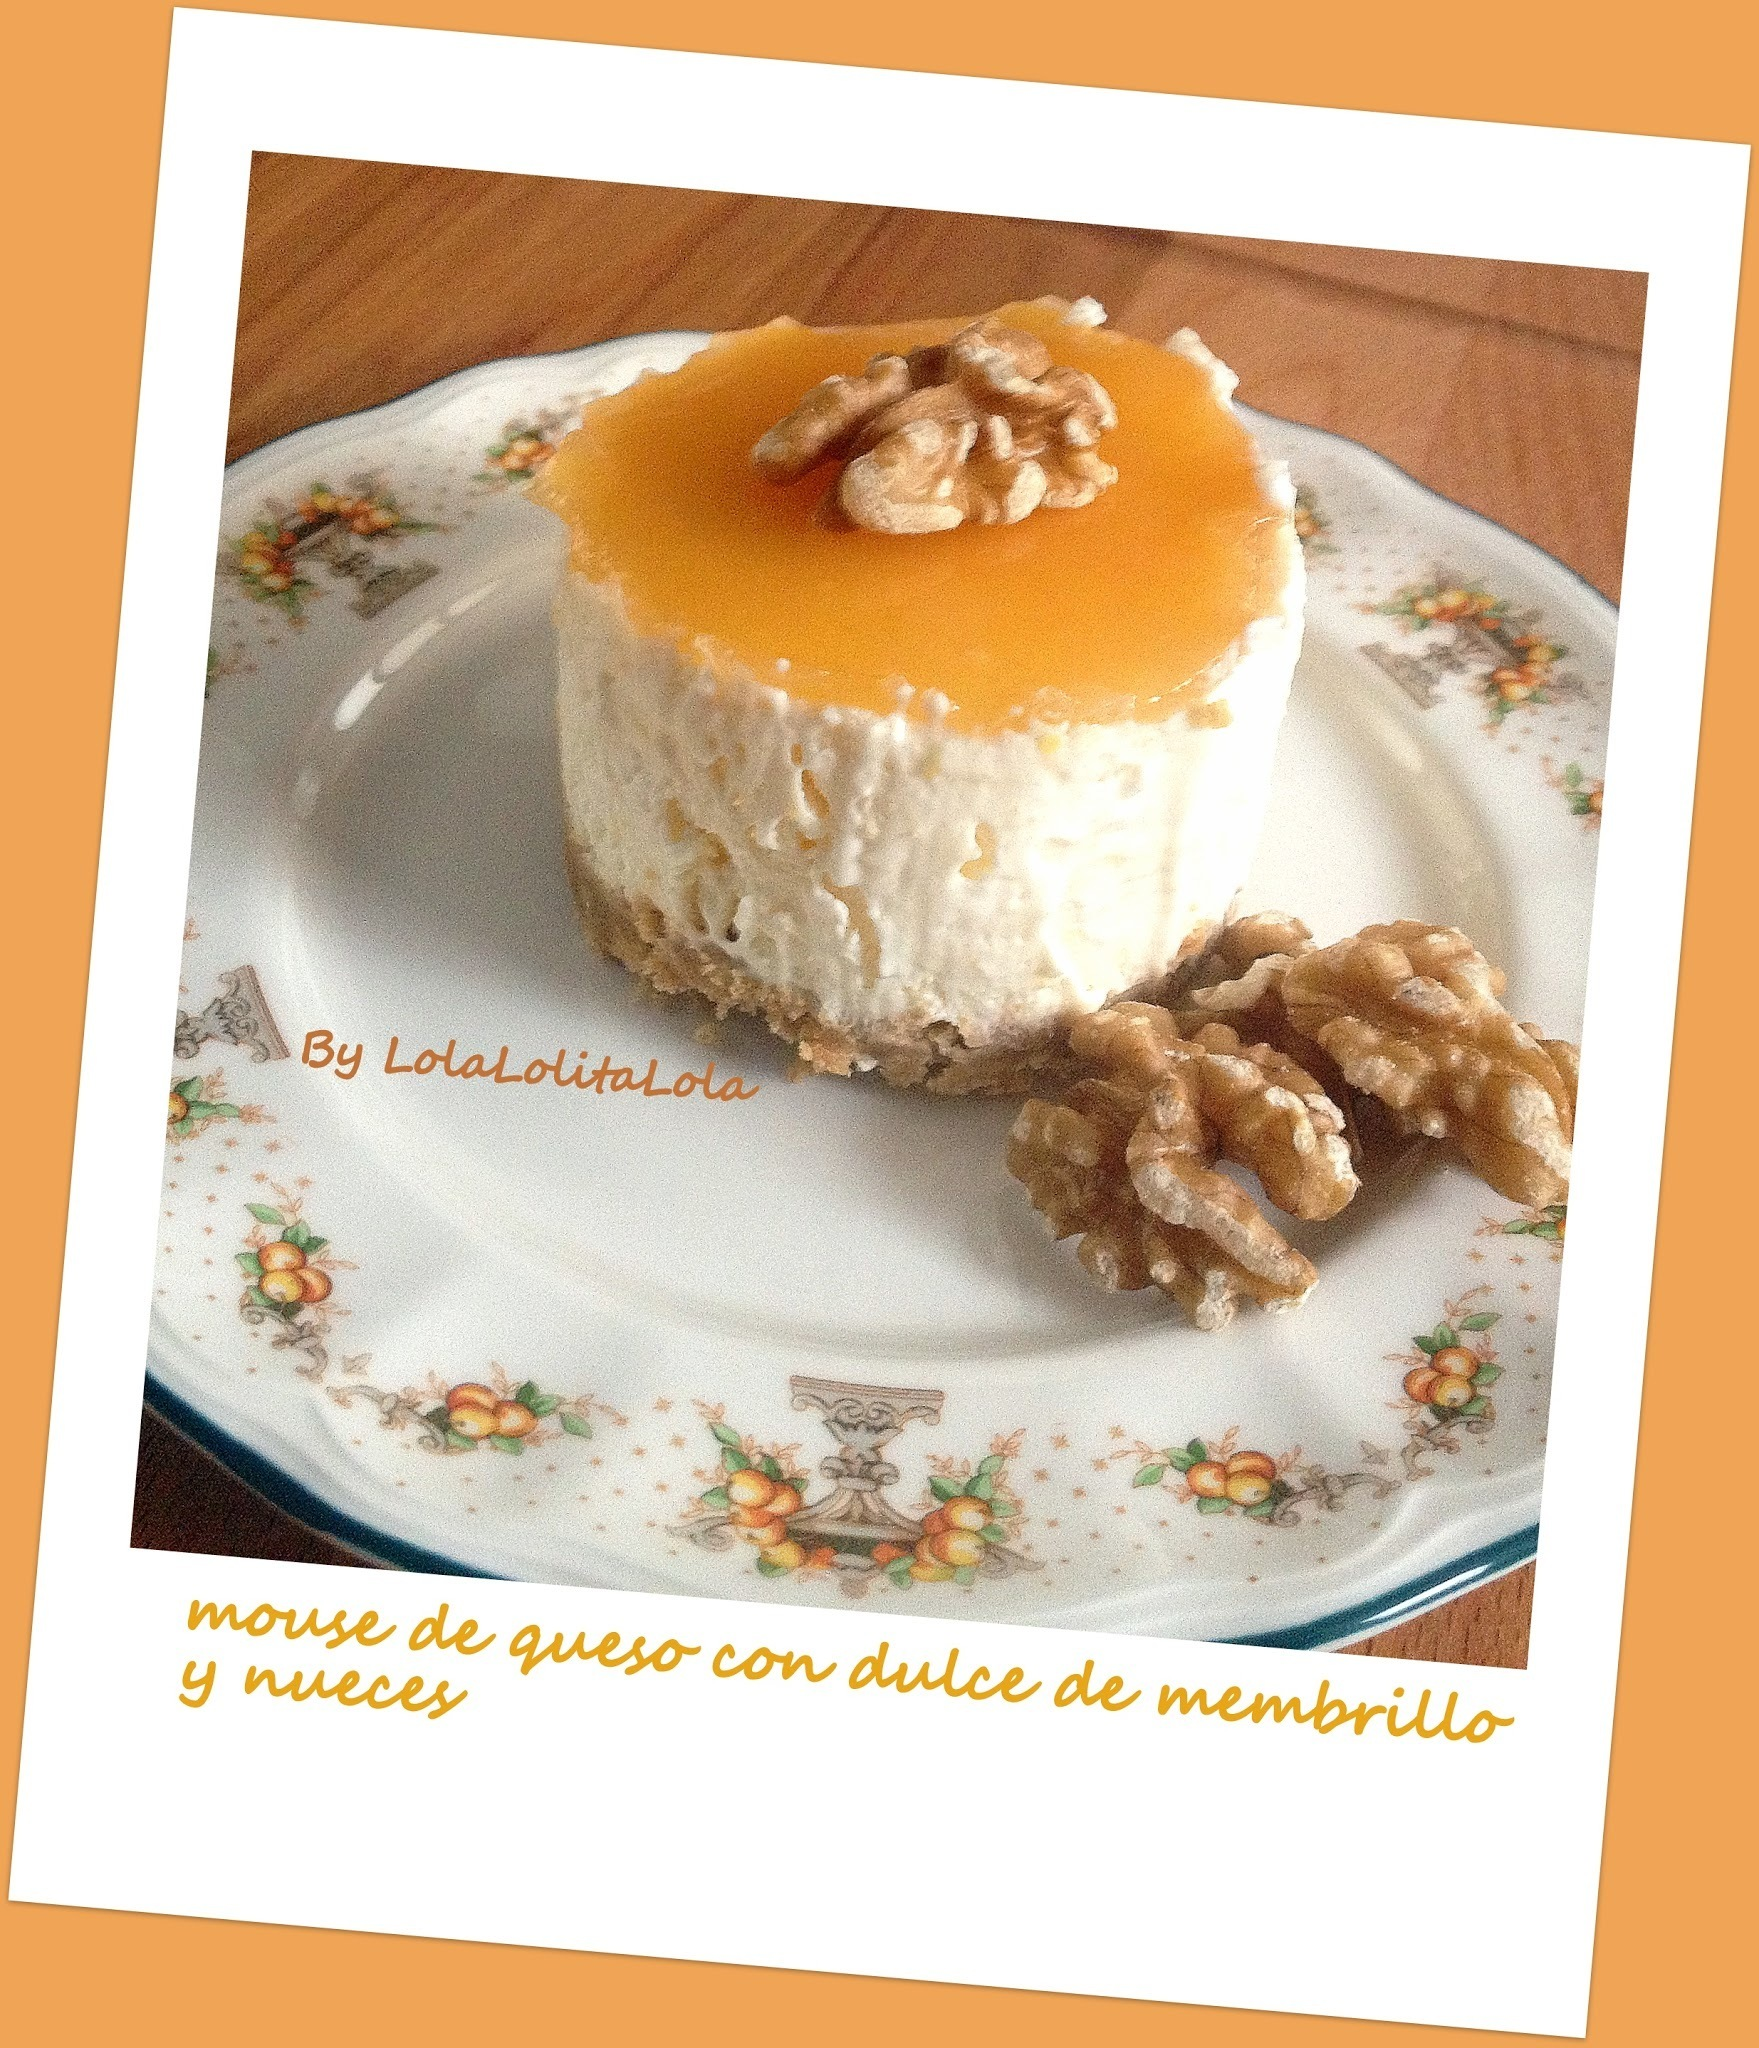 MOUSE DE QUESO CON DULCE DE MEMBRILLO Y NUECES